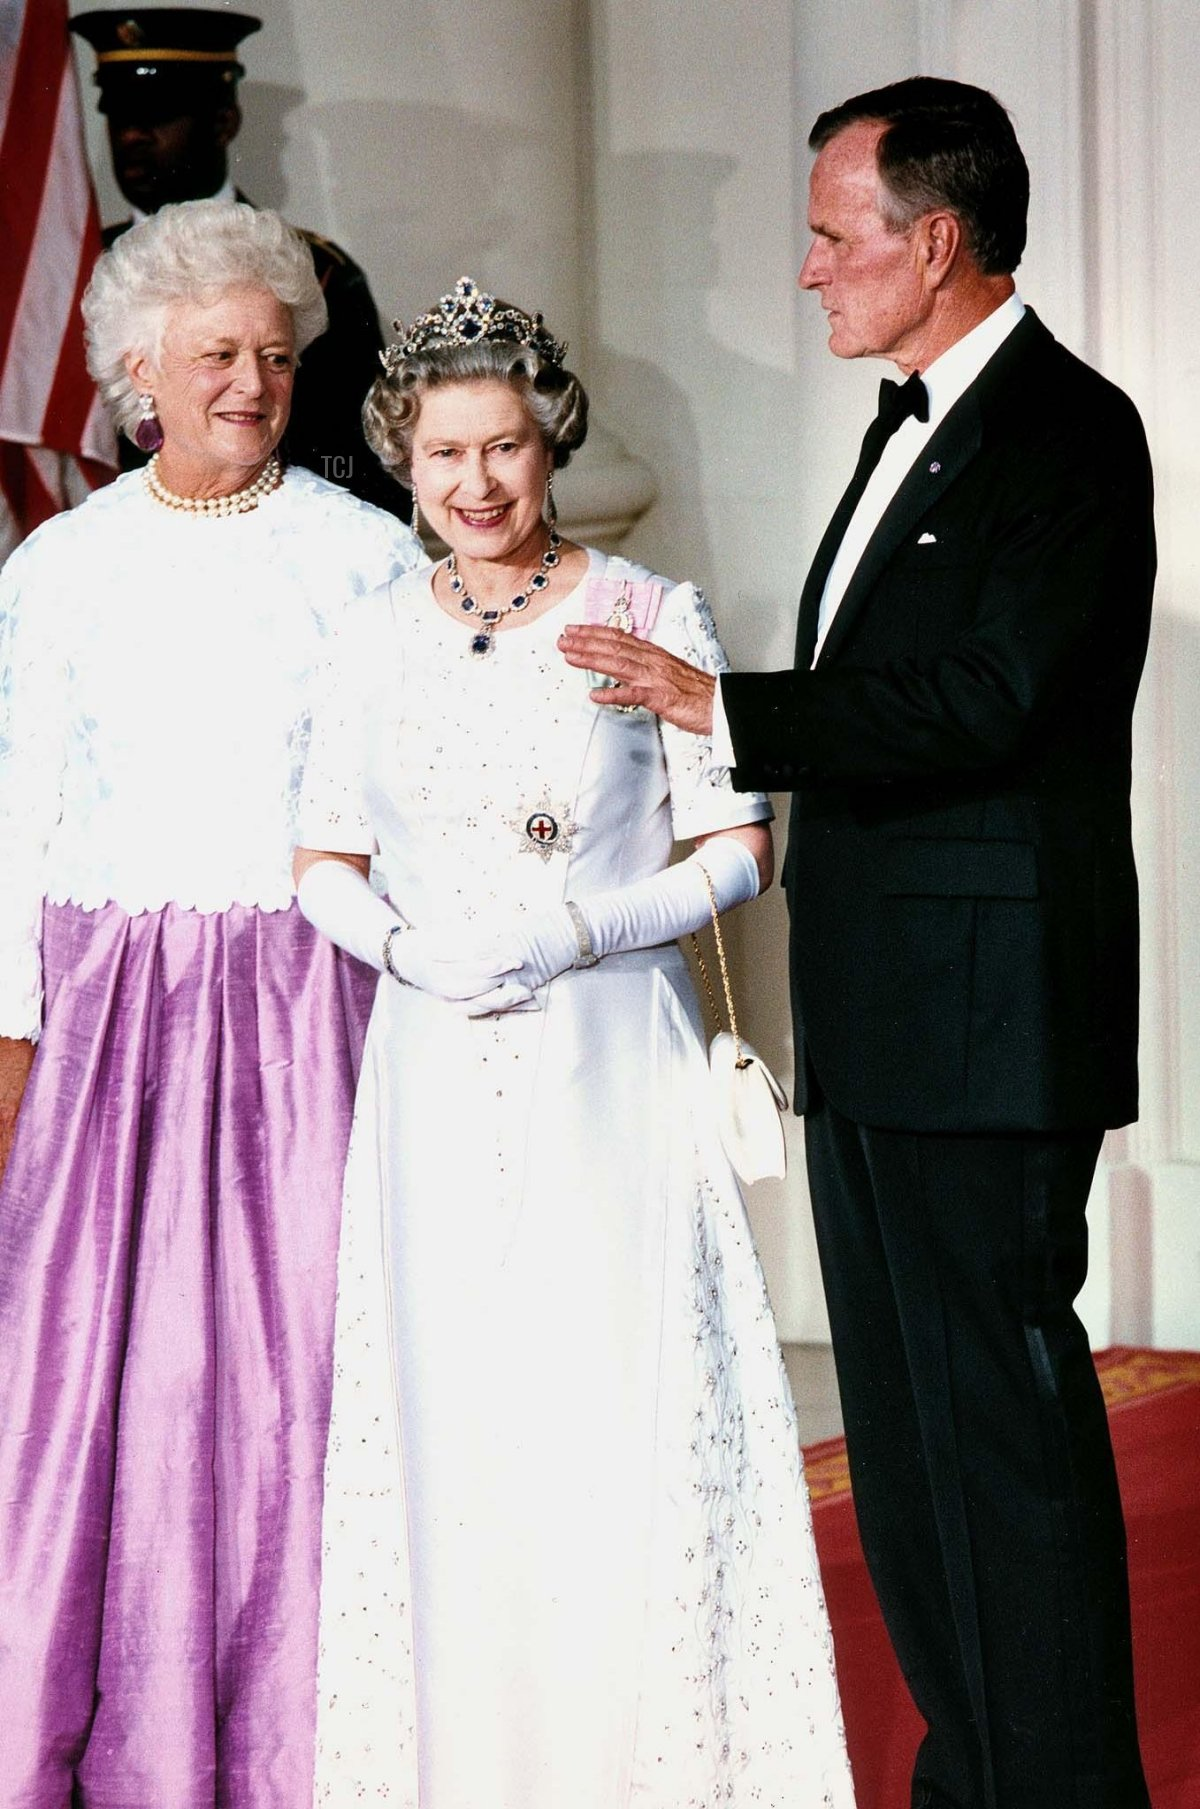 US President George Bush (R) talks to Great Britain's Queen Elizabeth II as they stand with First Lady Barbara Bush (L), 14 May 1991, in Washington, DC, as the queen and her husband Prince Philip arrive at the White House for a state dinner